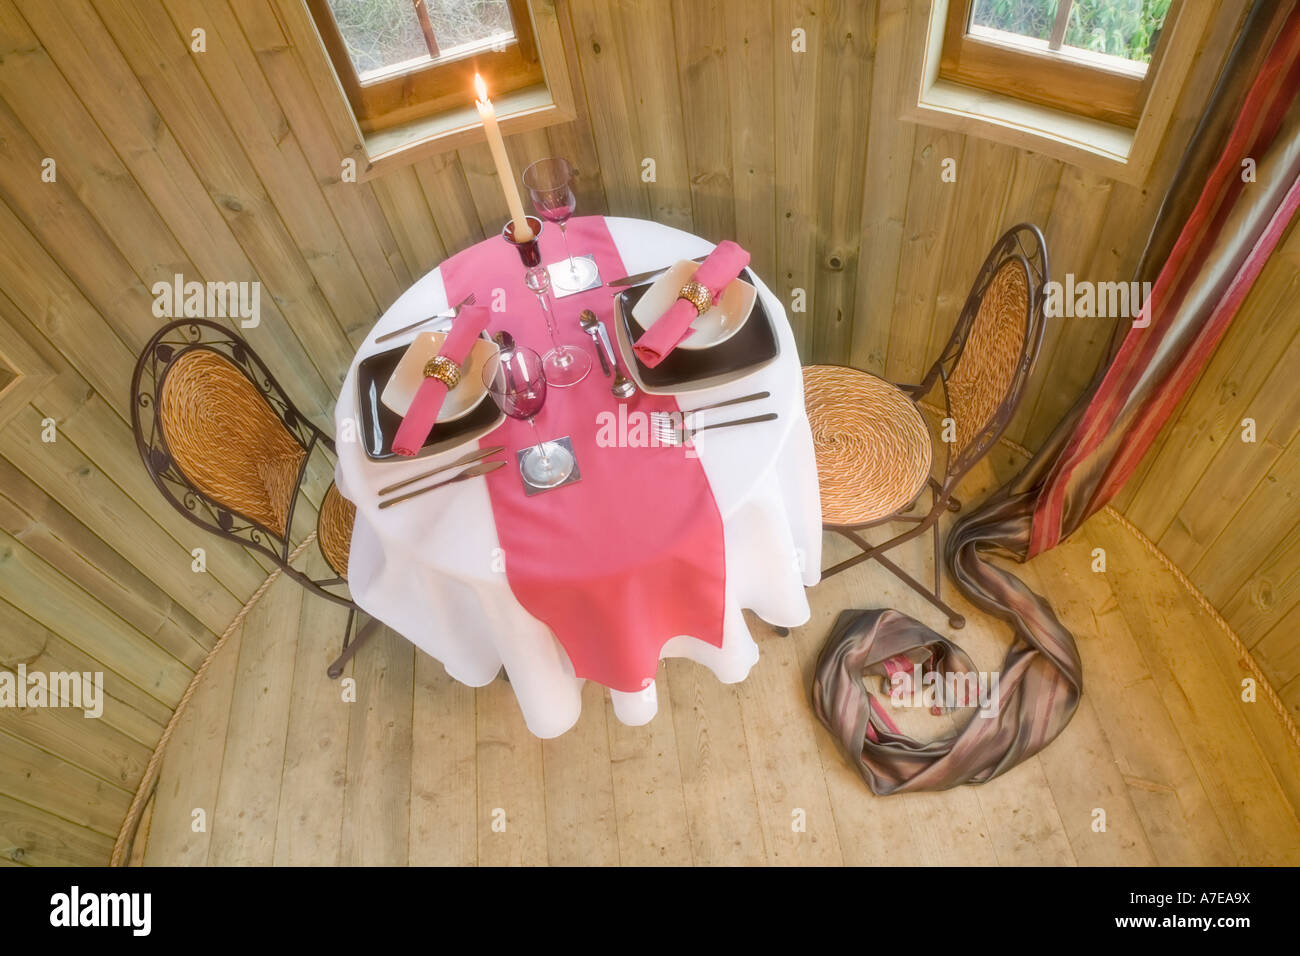 How to set a romantic dinner table for two - Treehouse Interior With Dining Table Set For A Romantic Dinner For Two Stock Image